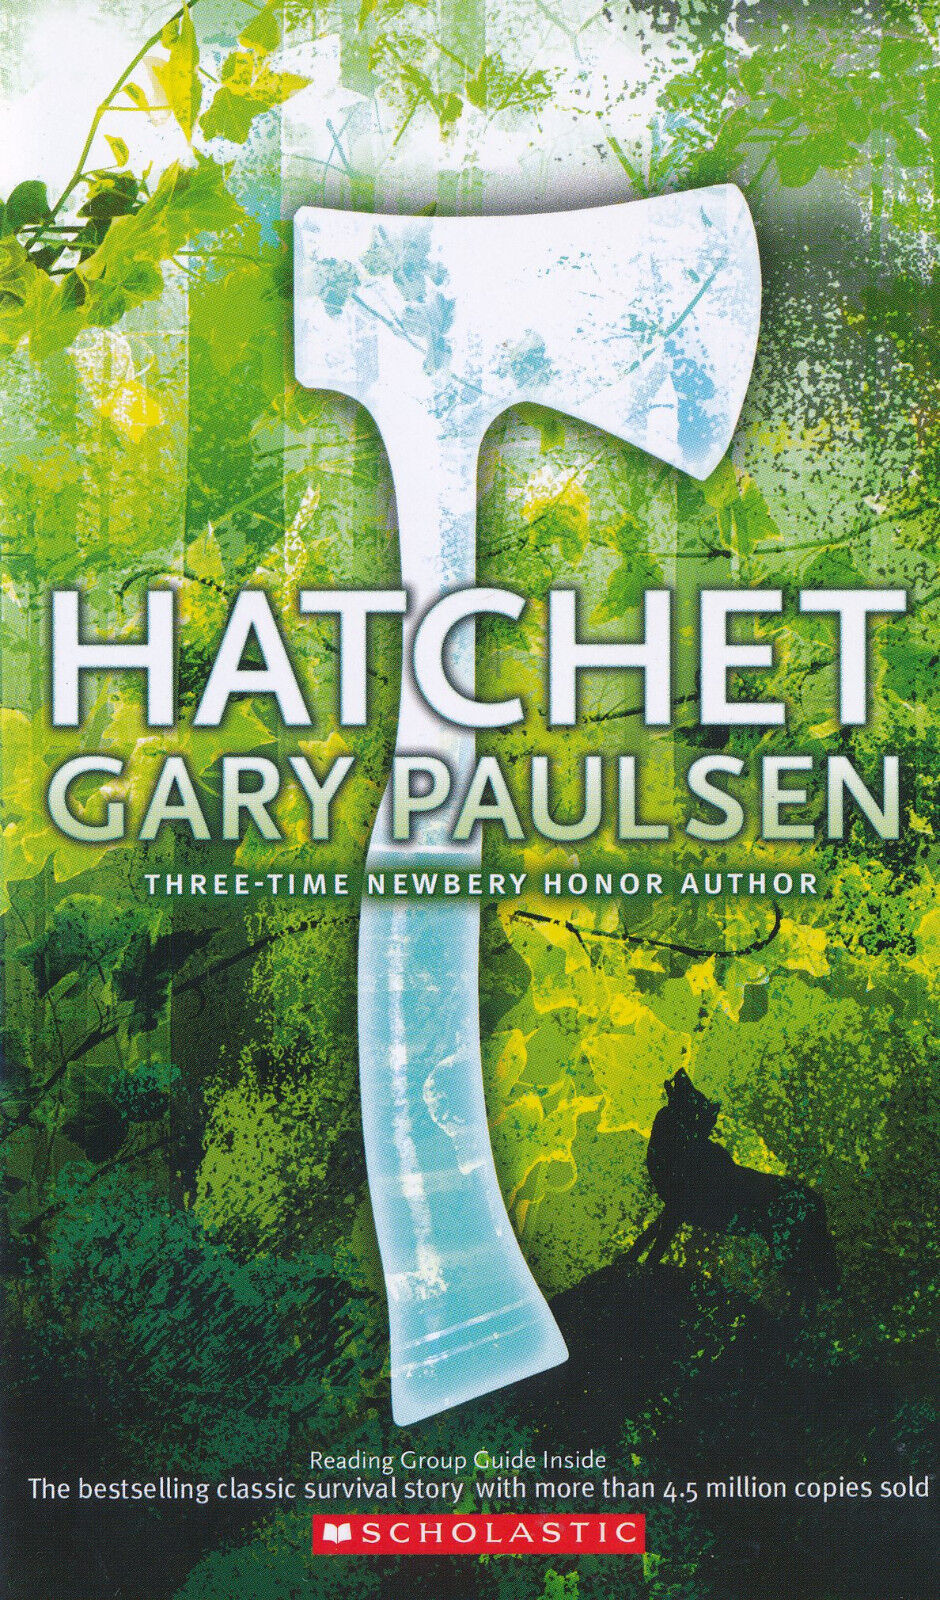 gary paulsen s hatchet monologue In chapter 15 of 'hatchet' by gary paulsen, brian comes up with a new method to hunt an elusive prey in this lesson we will take a look at his realization and delicious reward.